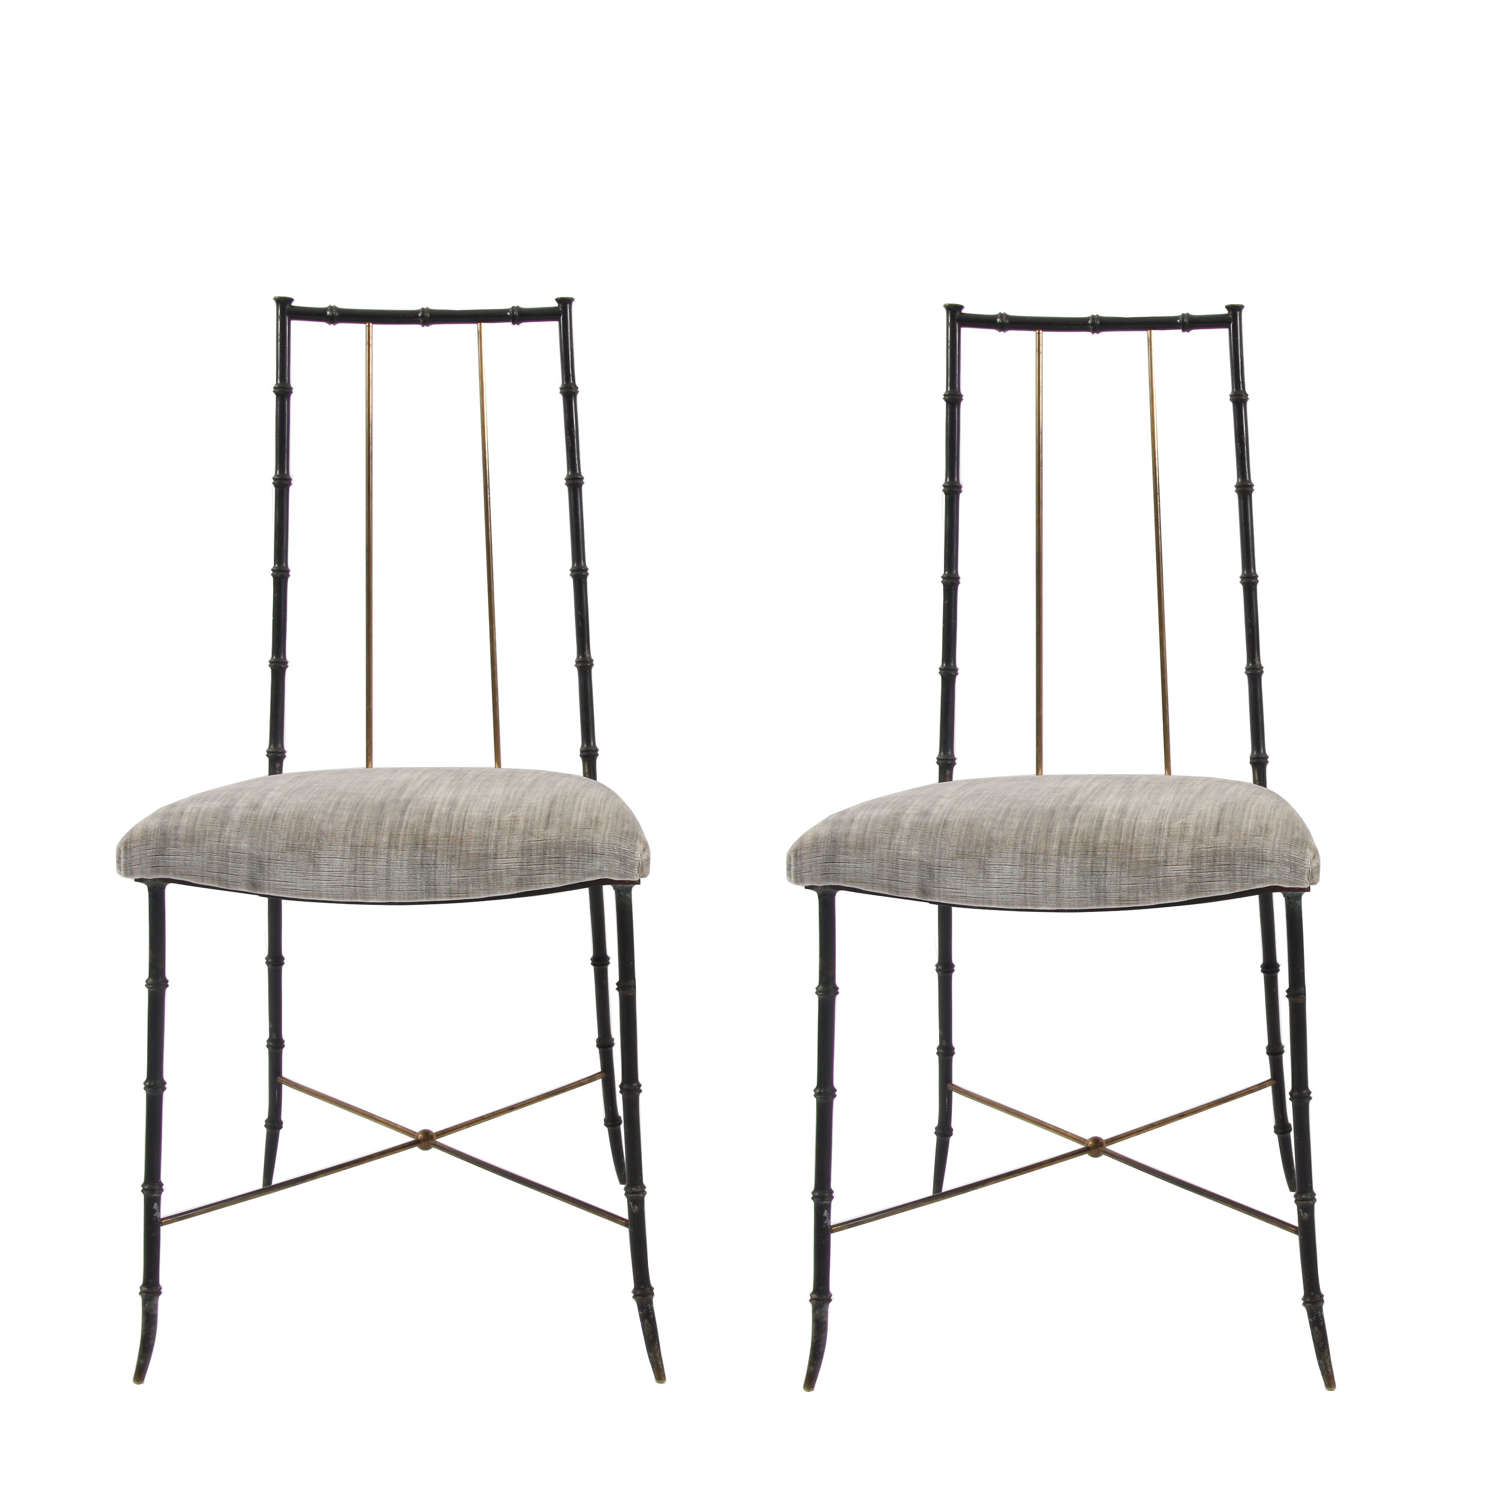 Pair of Faux Bamboo Steel and Brass Chairs